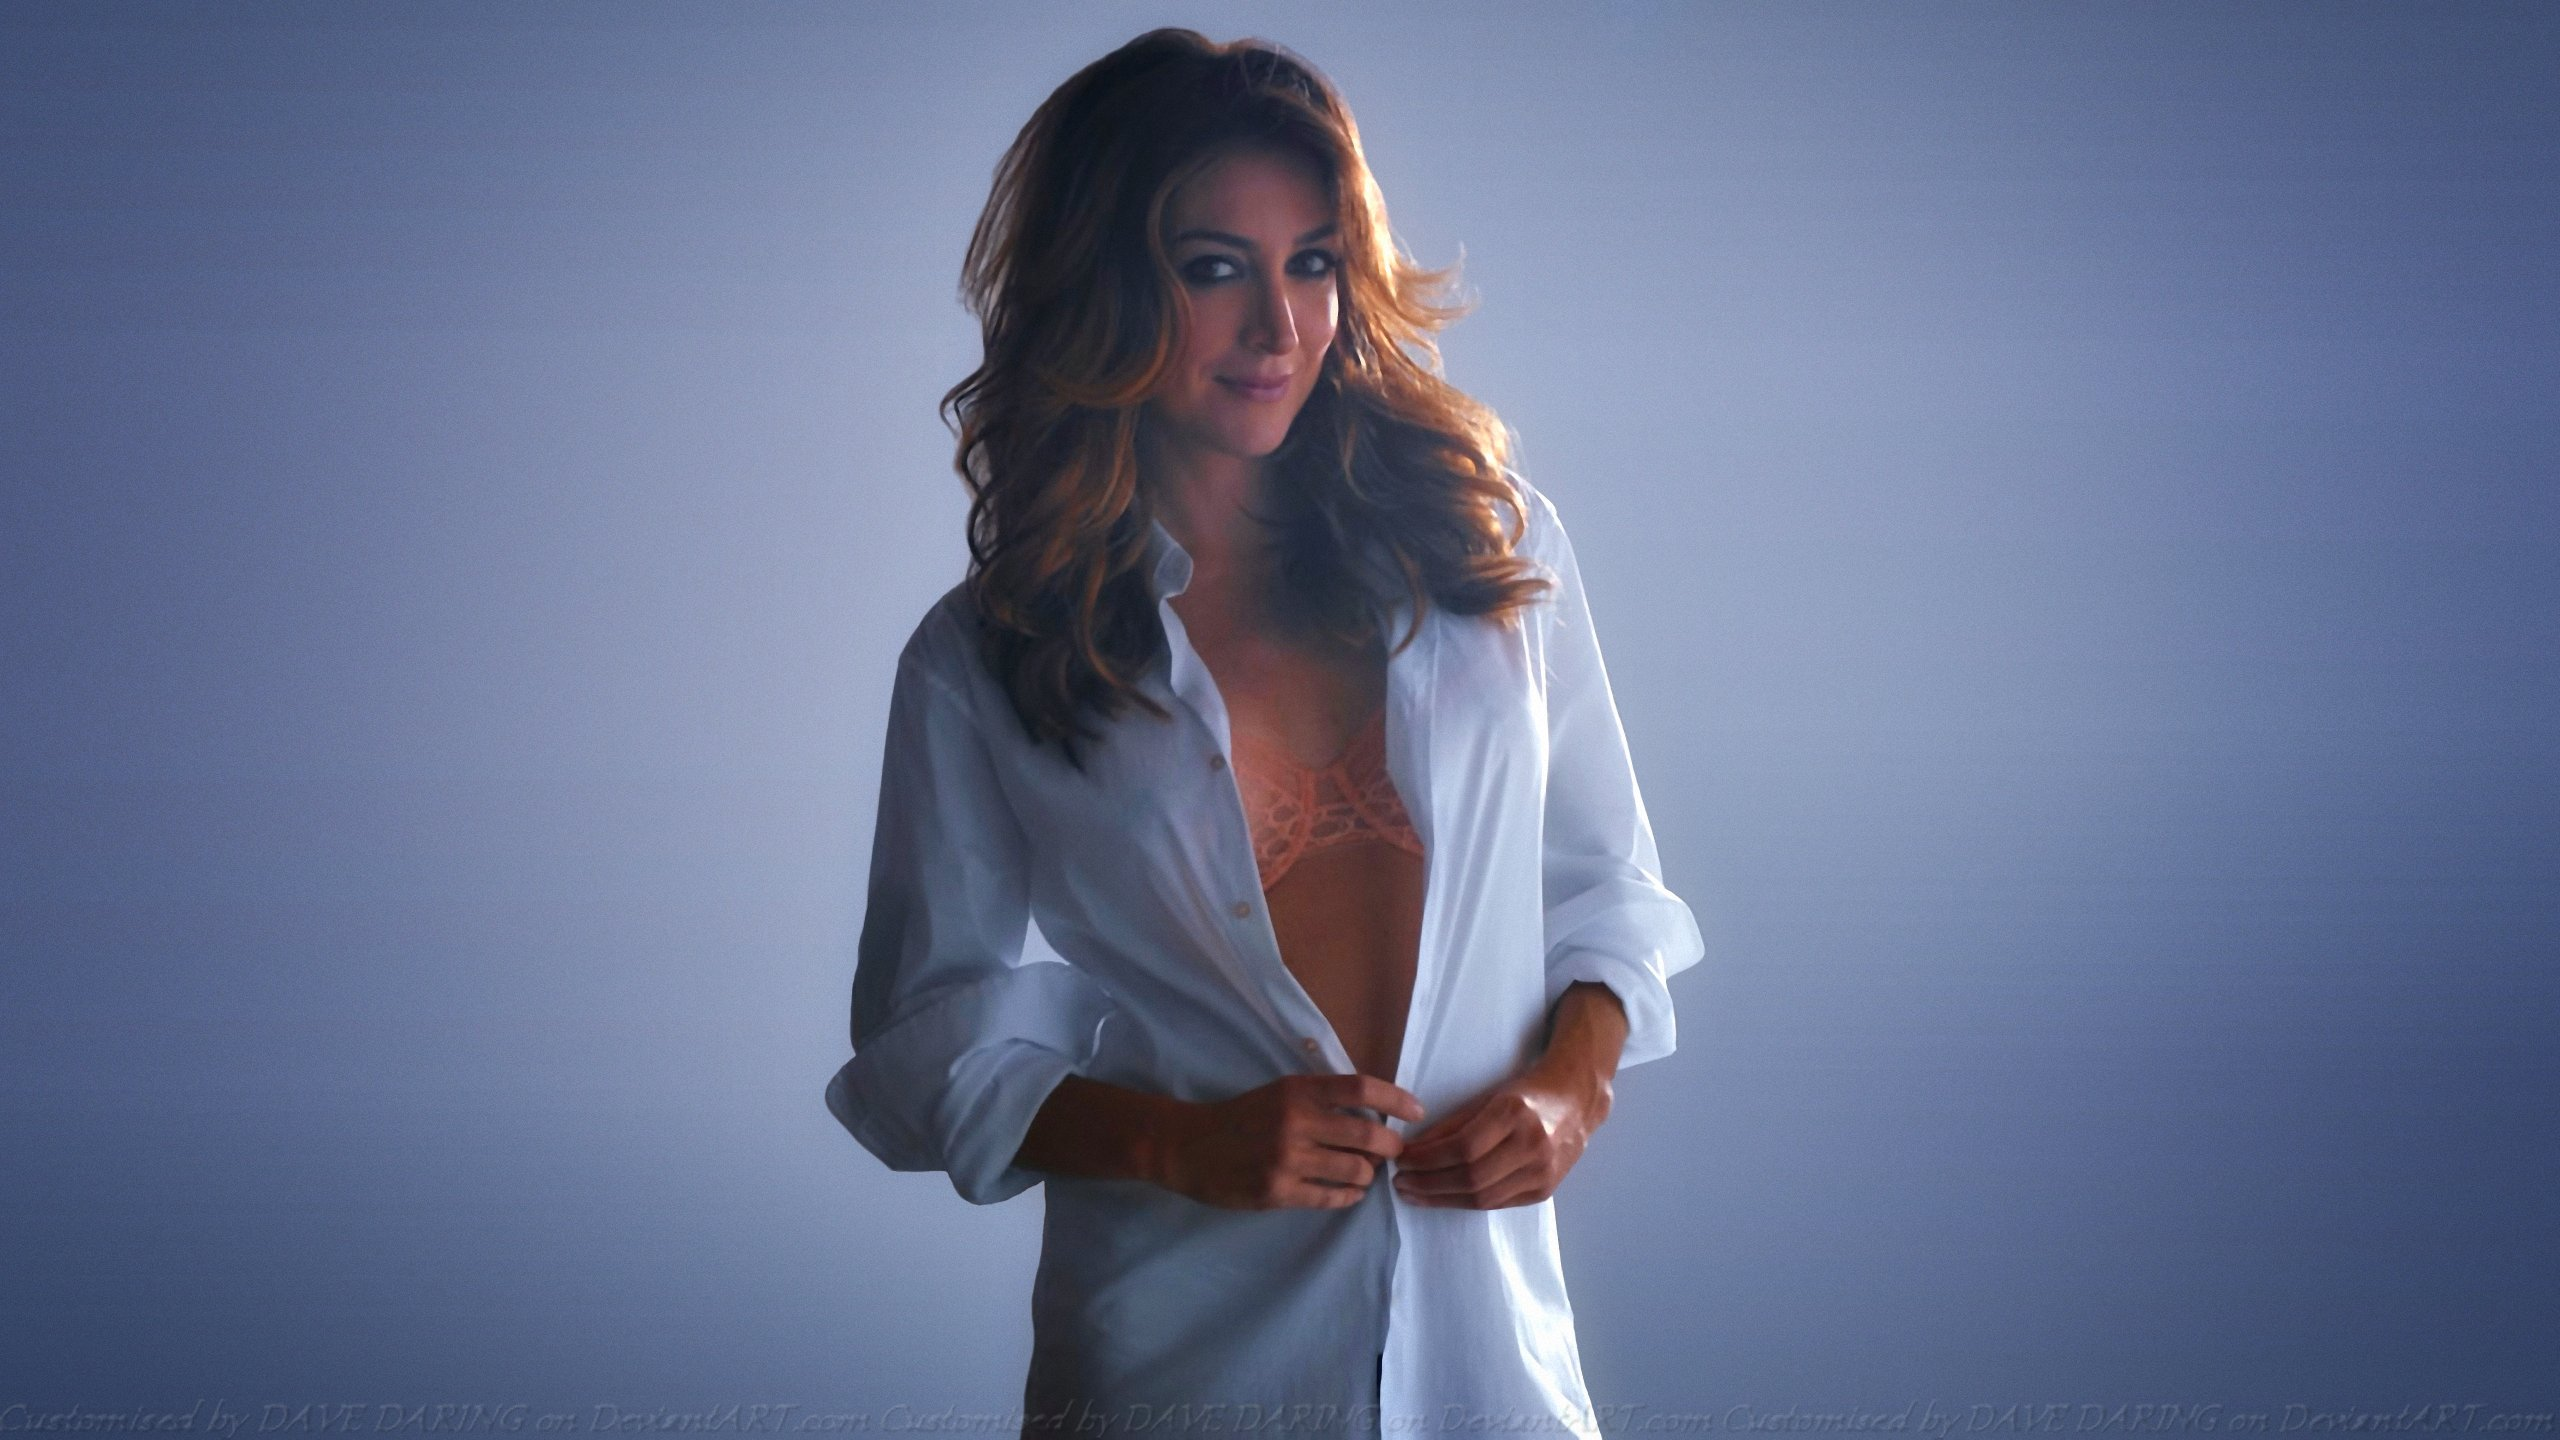 Sasha Alexander Wallpaper by Dave-Daring